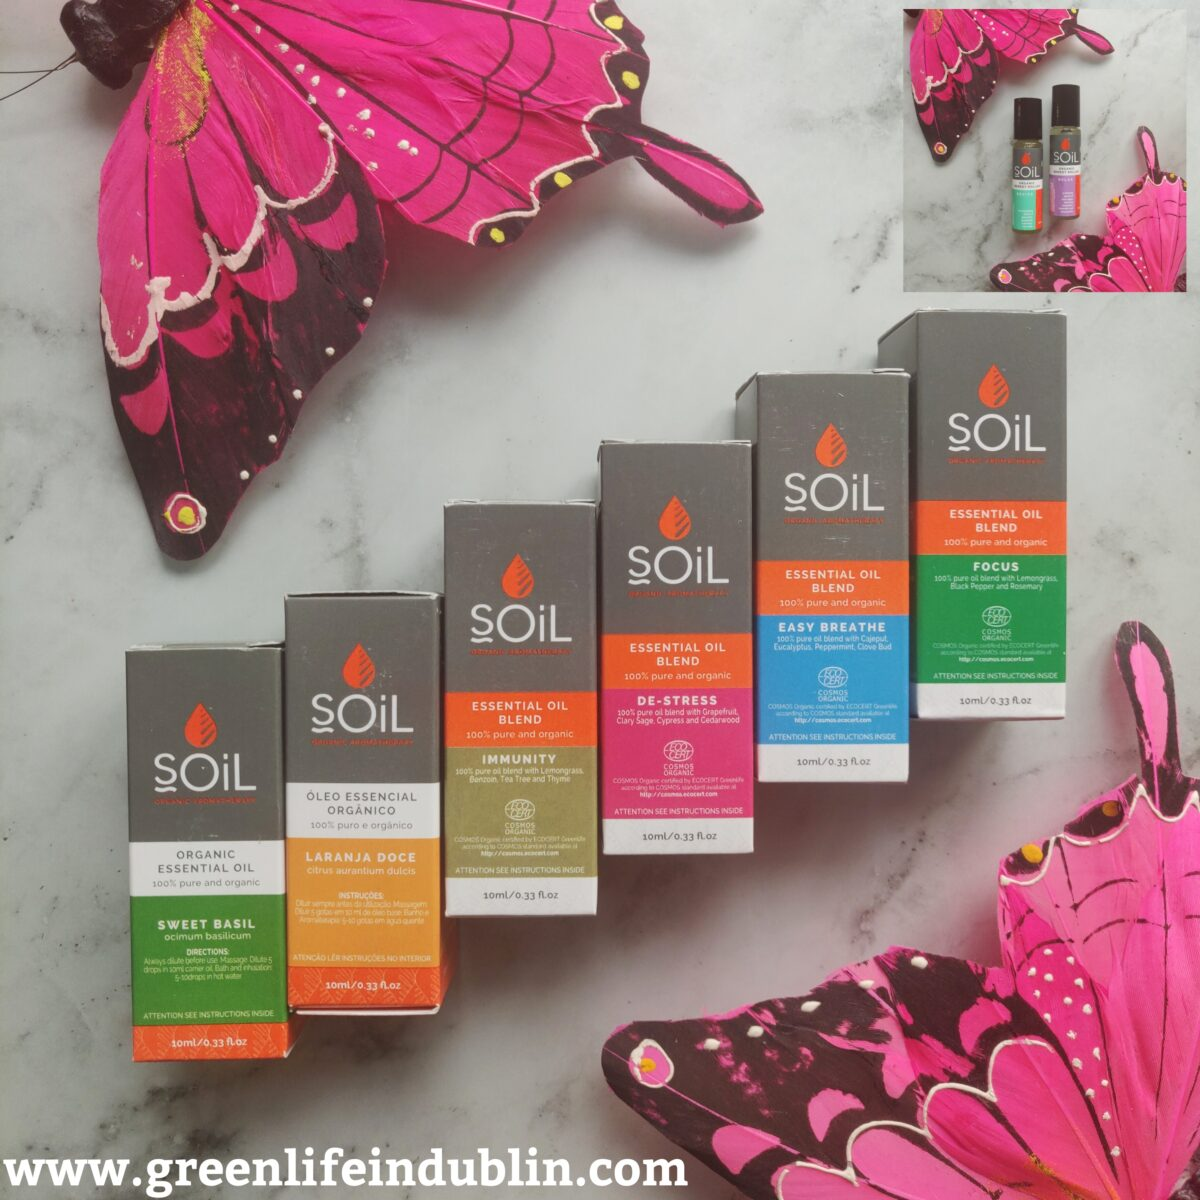 Soil Essential Oils at Love Lula [AD]